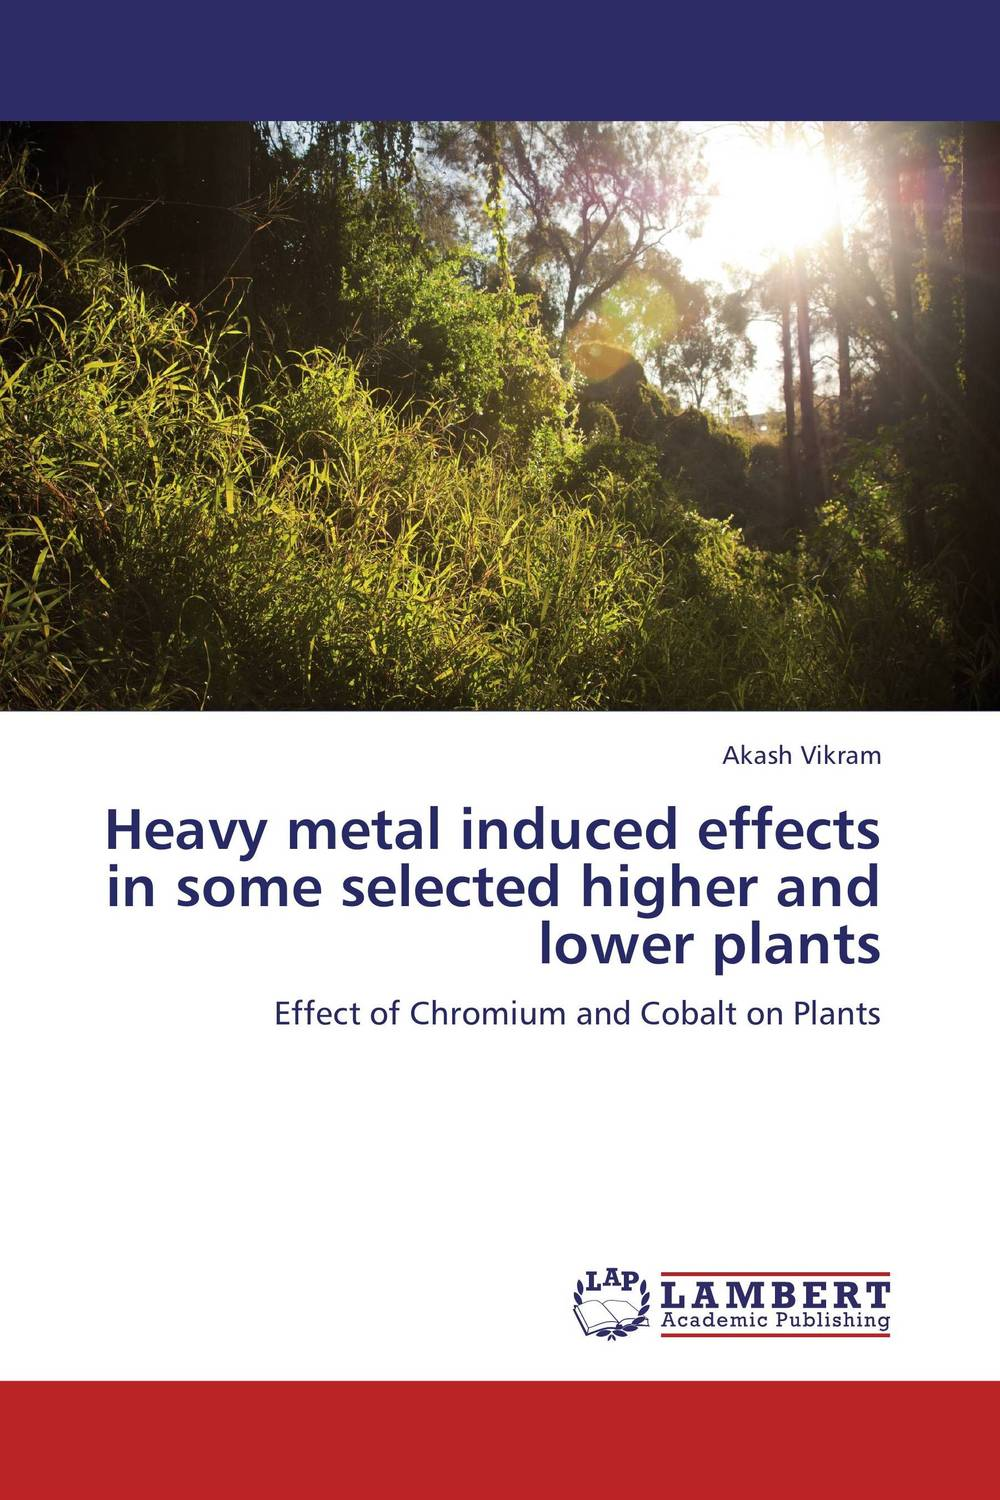 Heavy metal induced effects in some selected higher and lower plants effect of air pollutants on some common plants